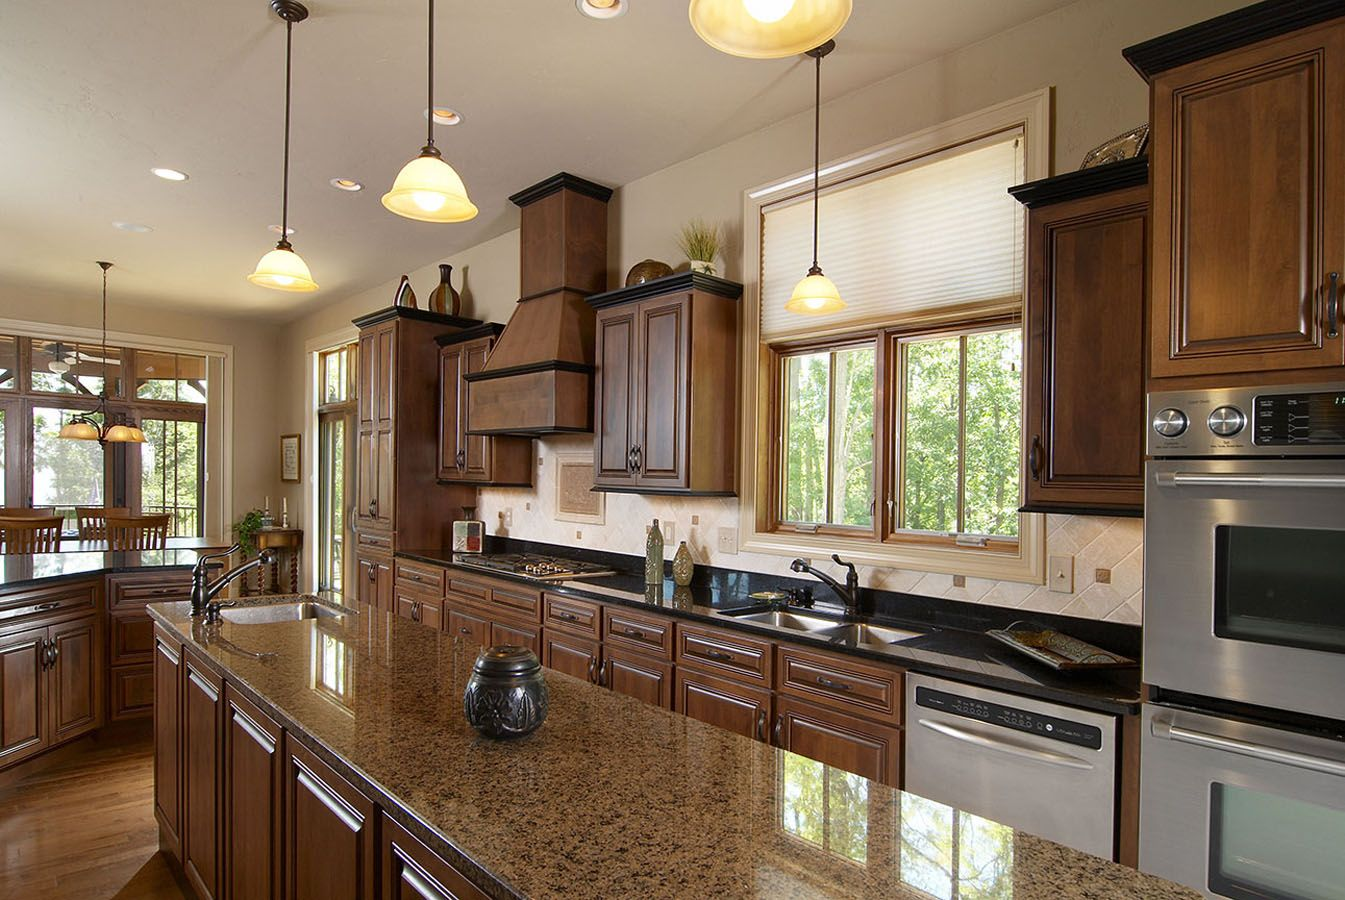 Kitchens | Great Northern Cabinetry